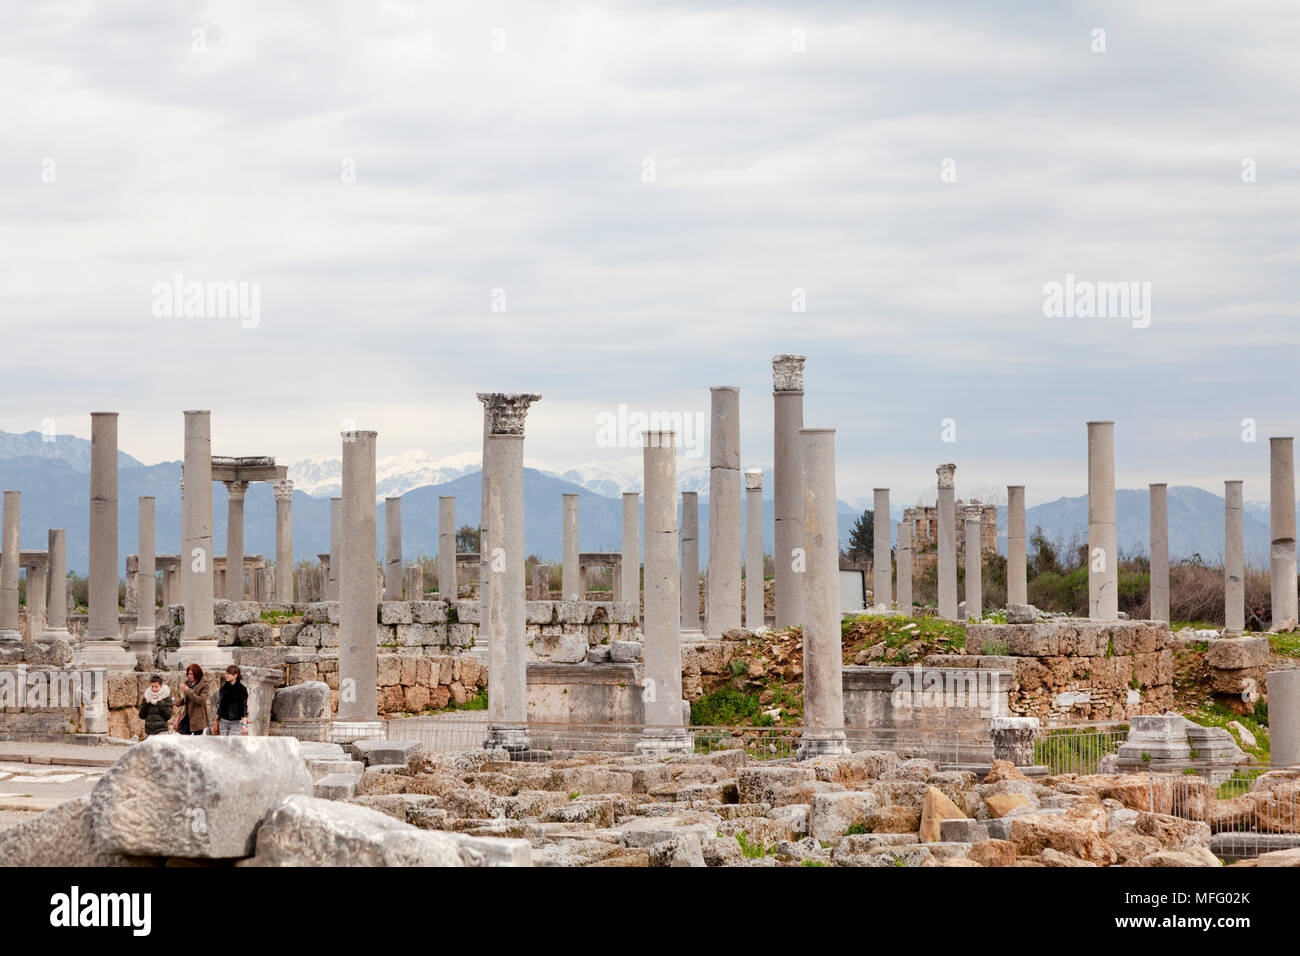 Turkey - Perge Ancient City. Perge was once the capital city of the ...